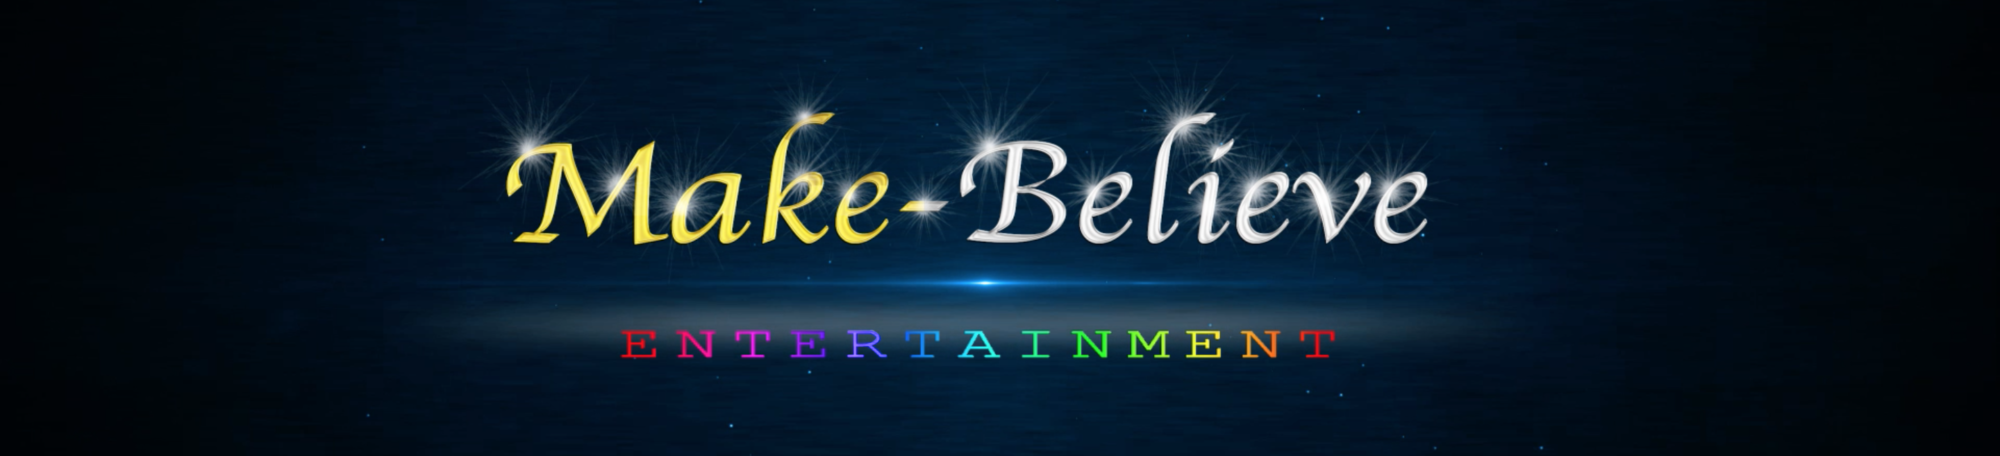 Make-Believe Entertainment